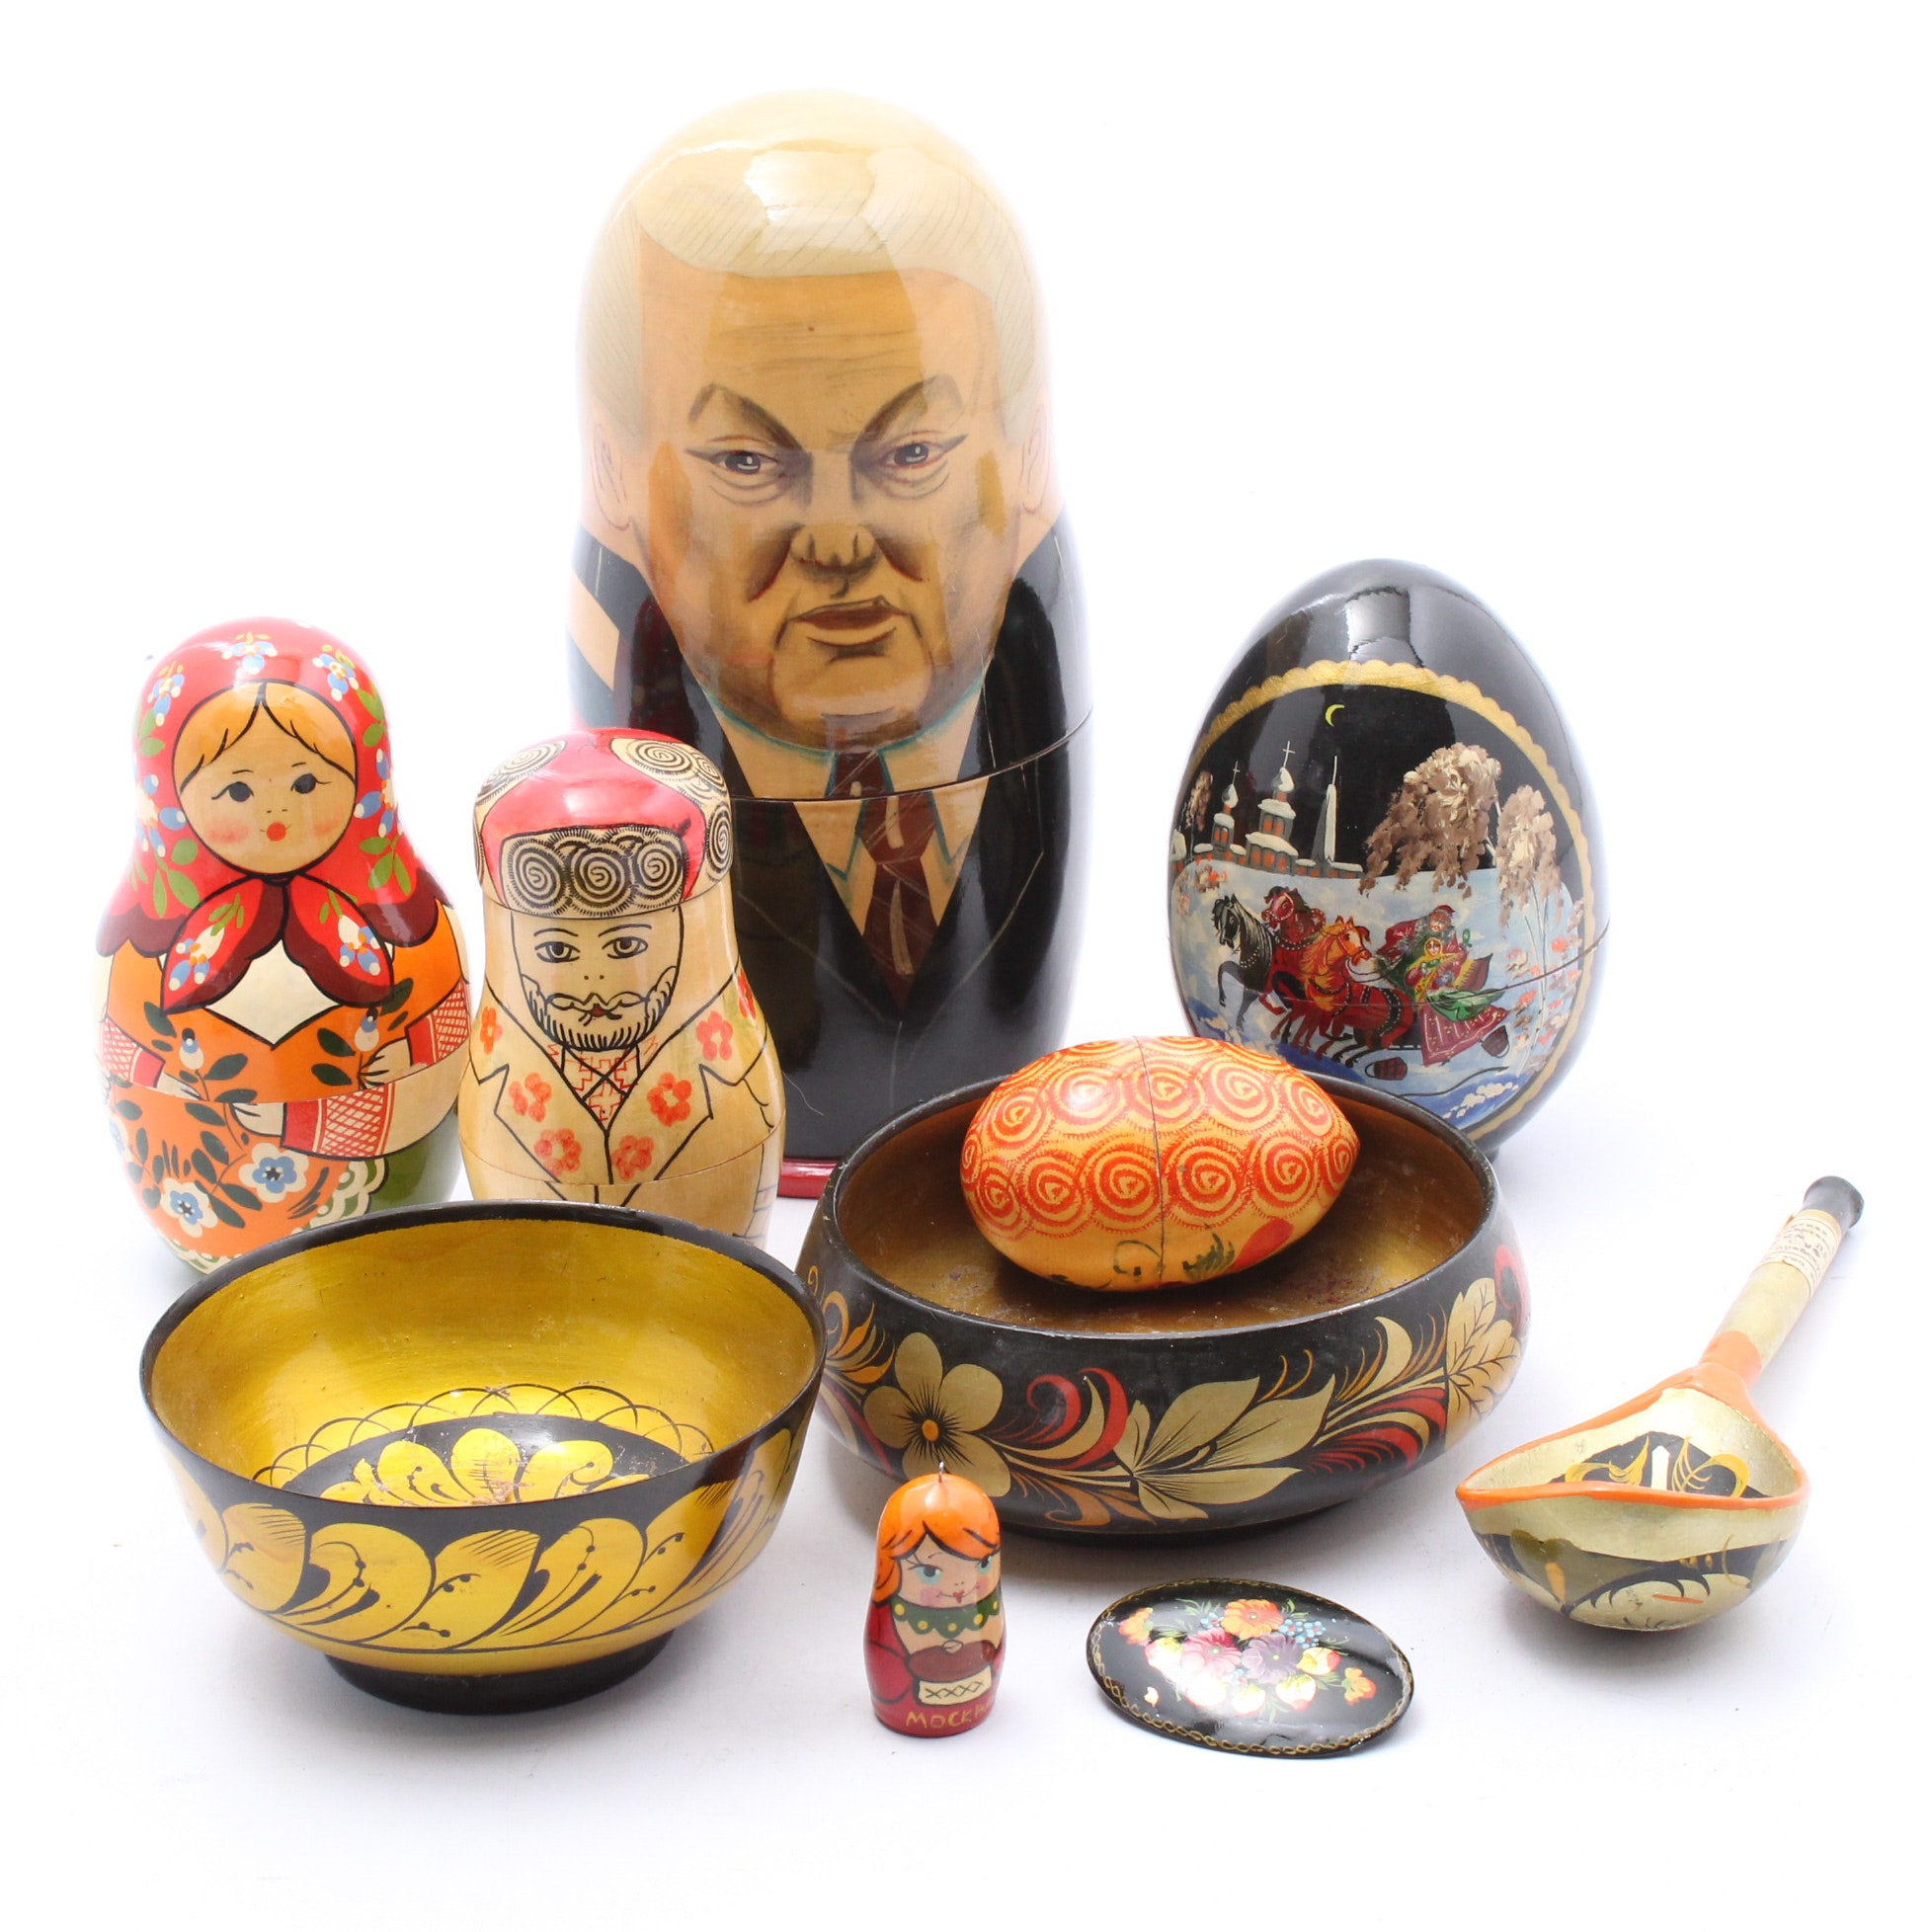 Hand-Painted Russian Matryoshka Dolls, Serveware, Eggs and Brooch